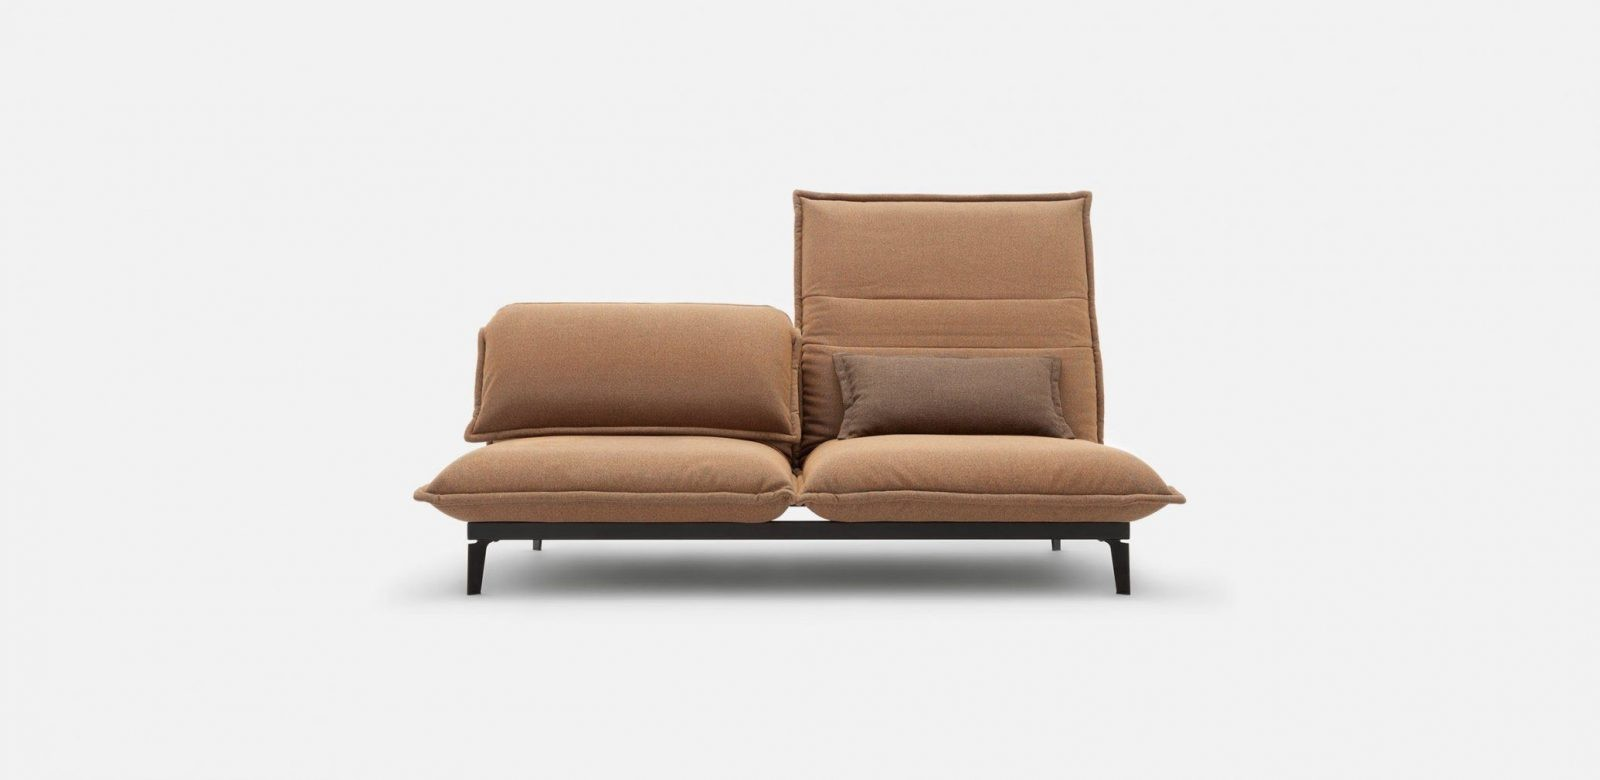 Nova von Rolf Benz Sofa Nova Photo